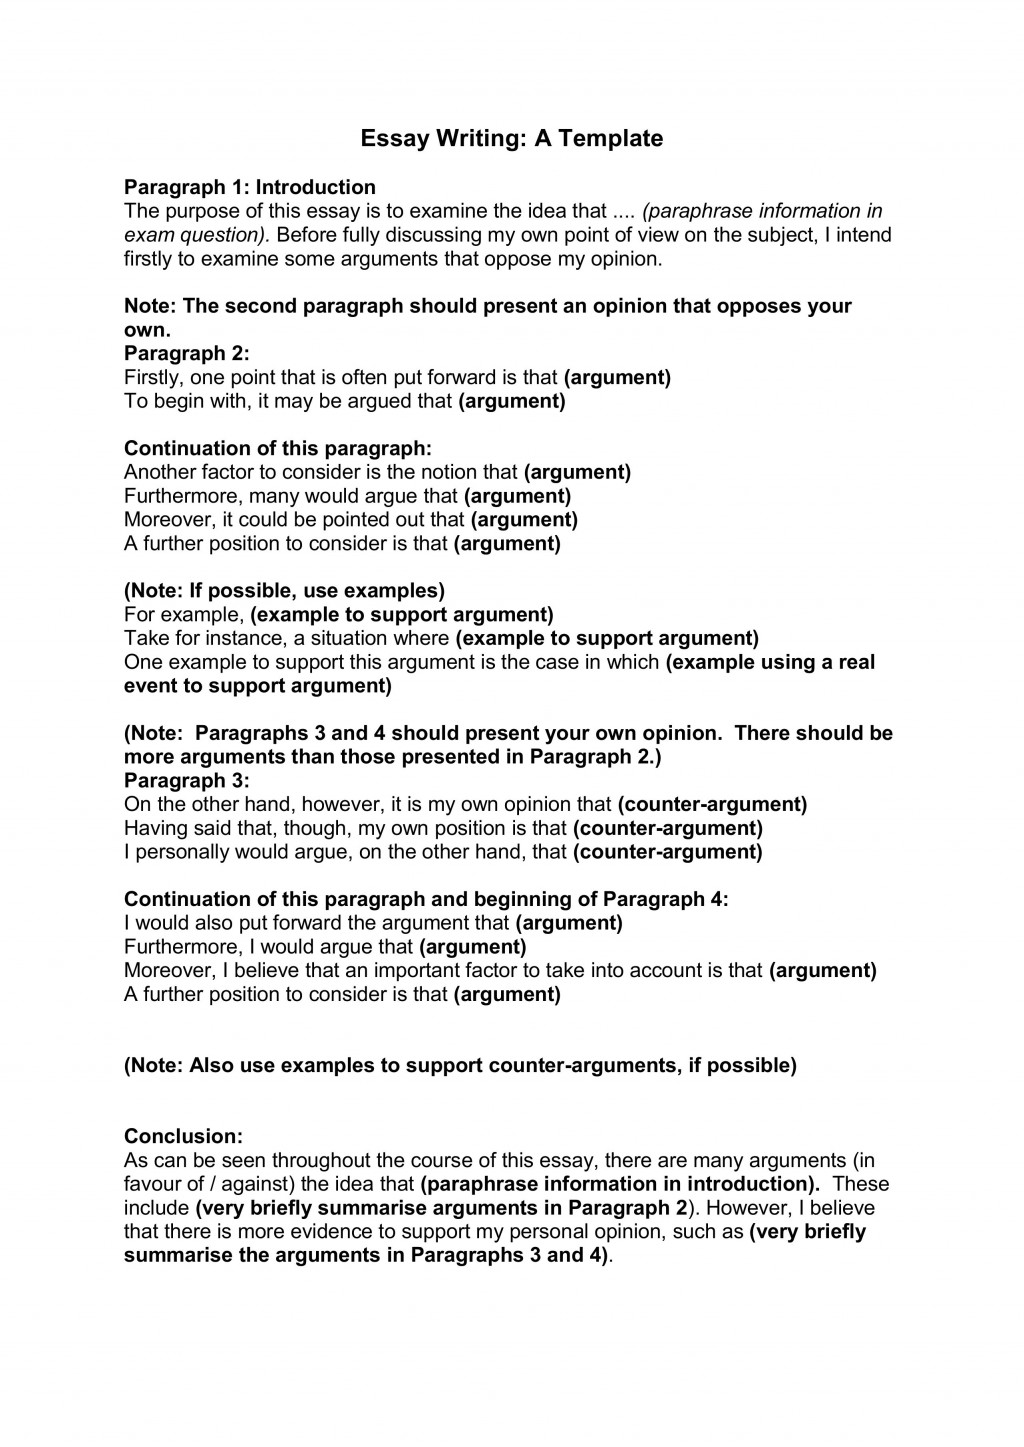 016 Image Essay Writing Homework Service Byassignmentdepa Good This I Believe Topics Template For P Sampless Stupendous Examples Personal College Large